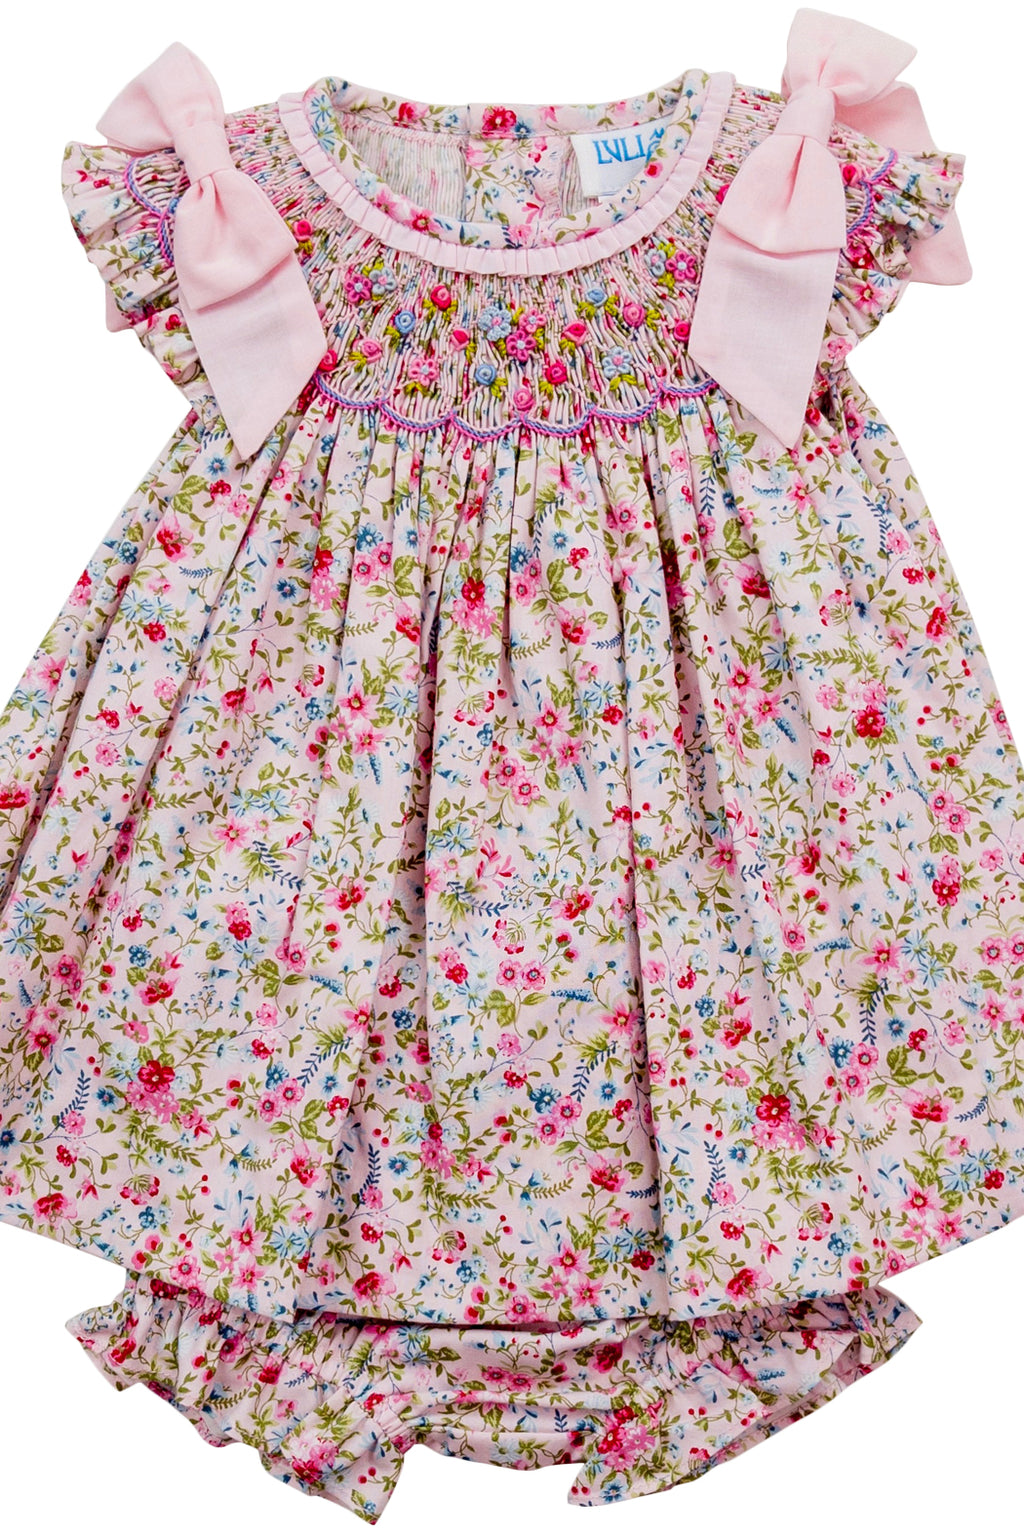 Floral Smocked Dress w/ Bows & Bloomers